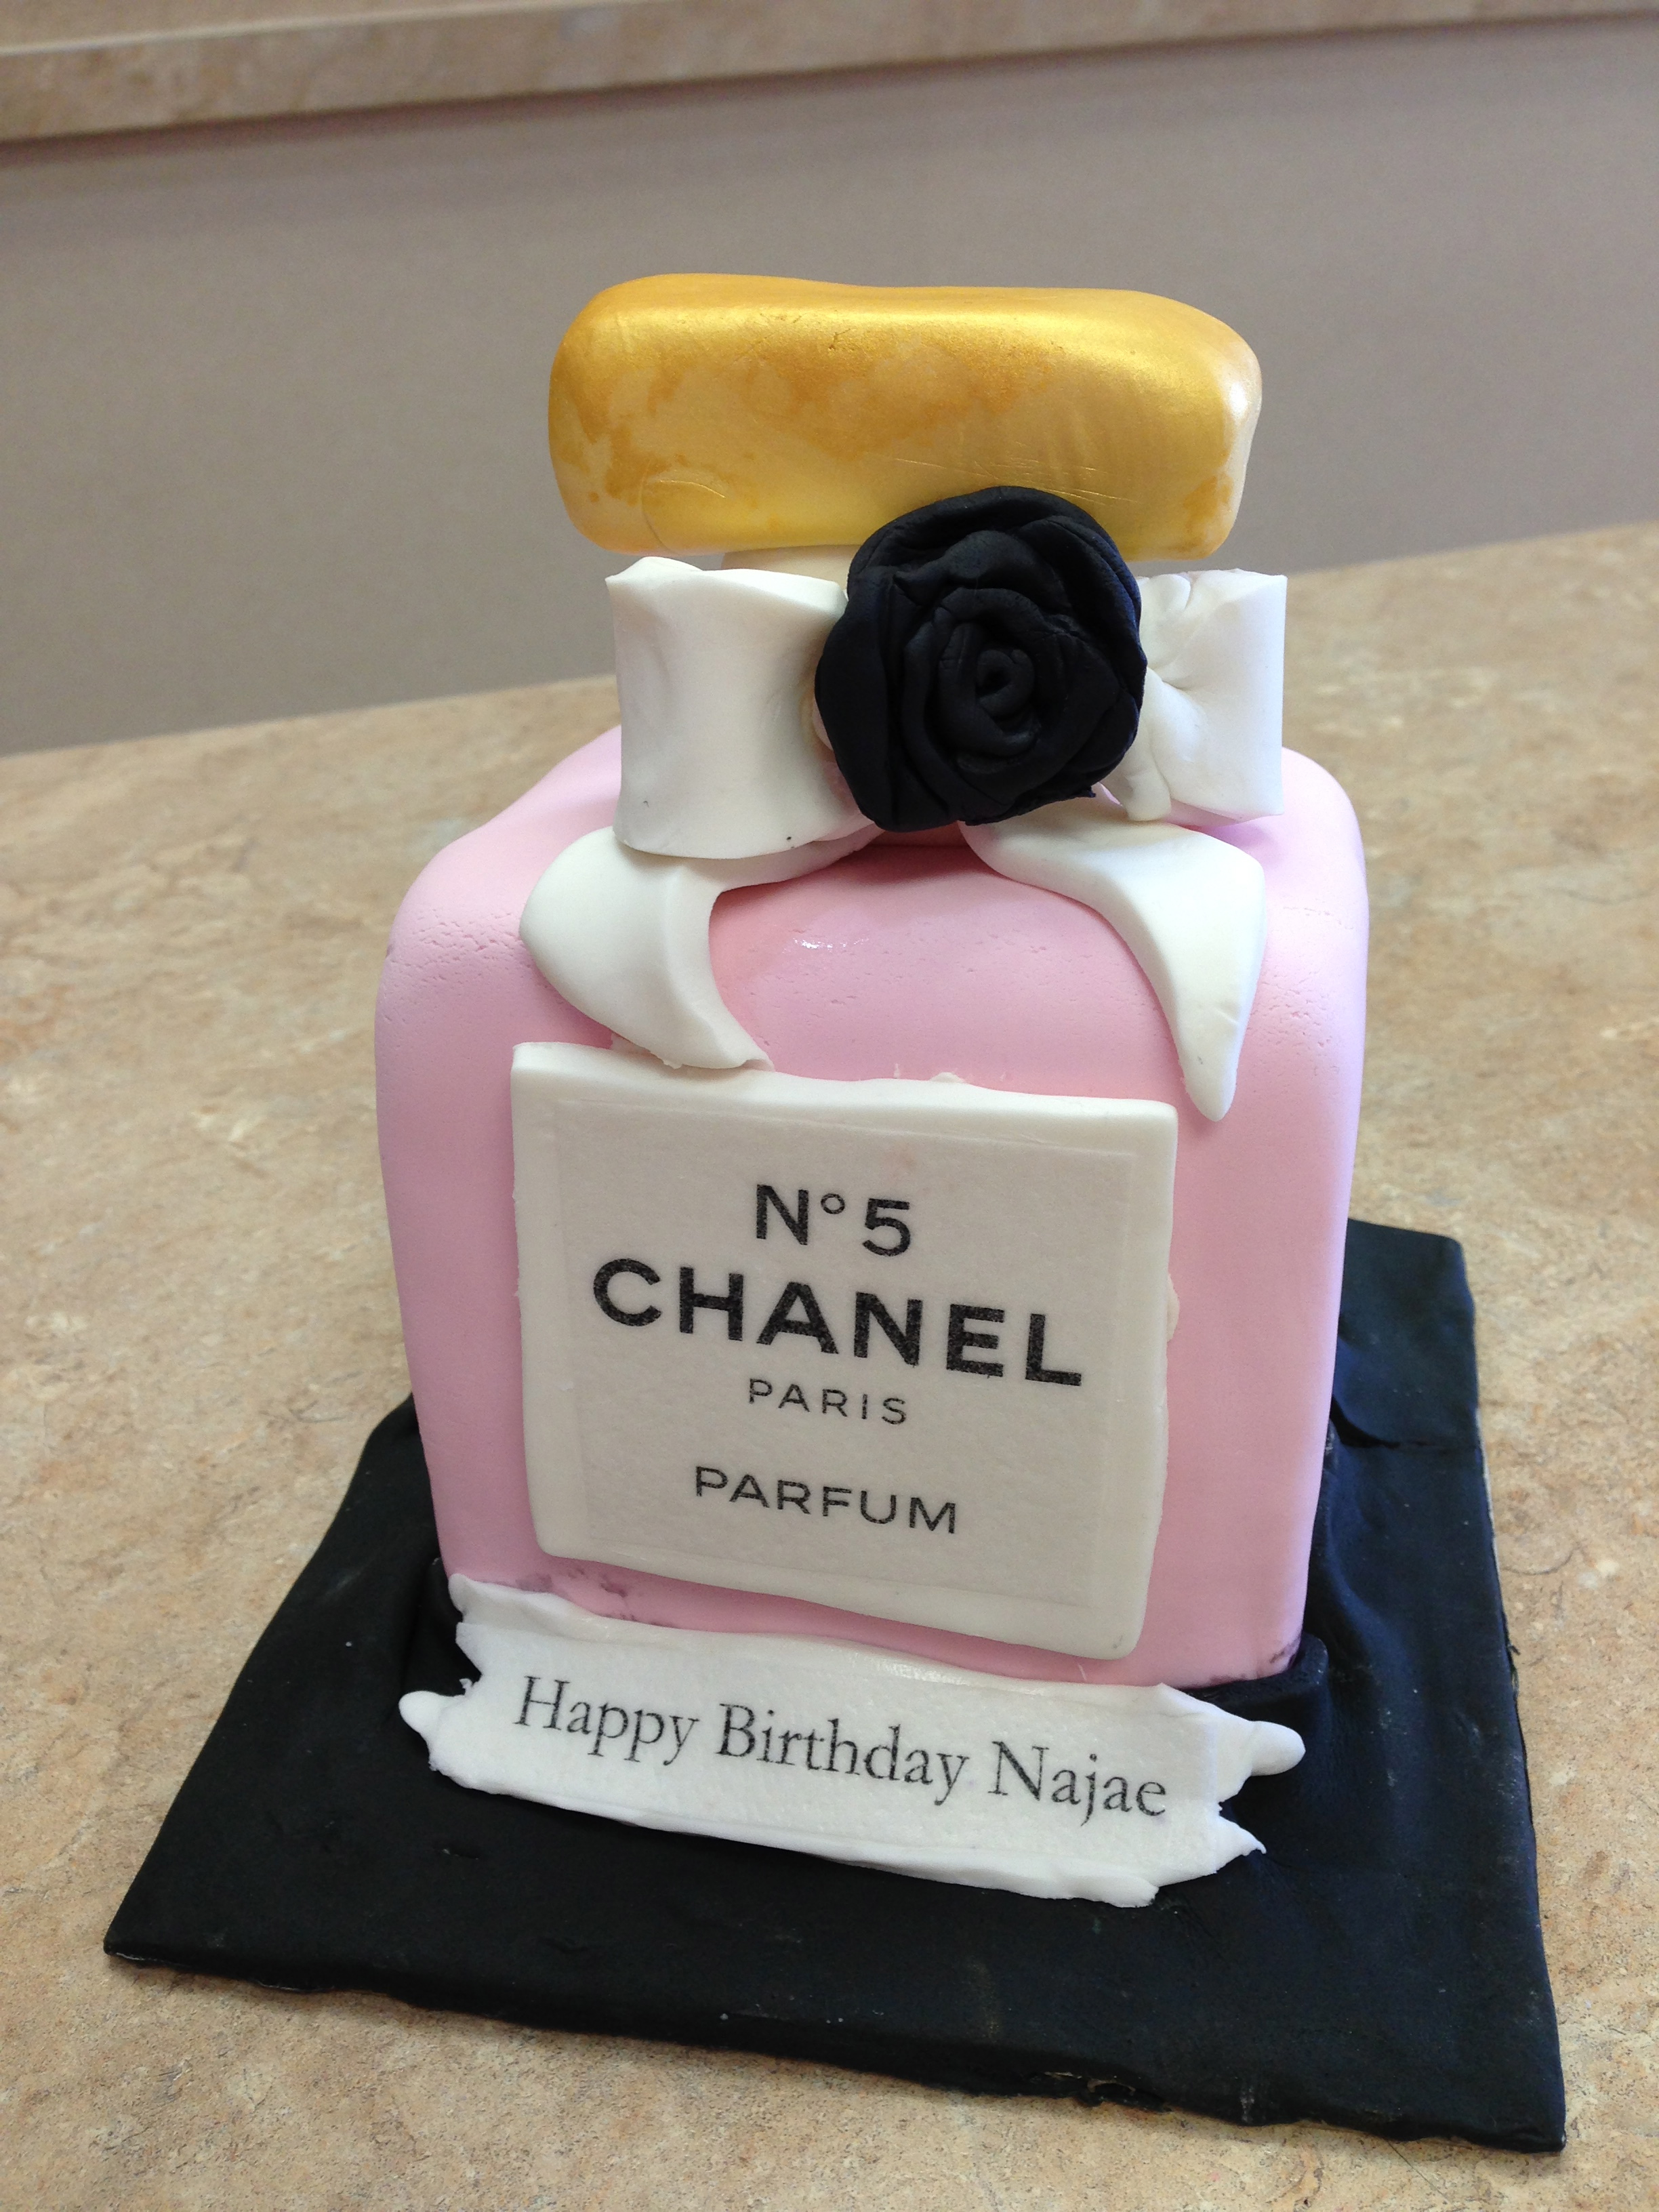 Chanel Perfume Bottle Cake